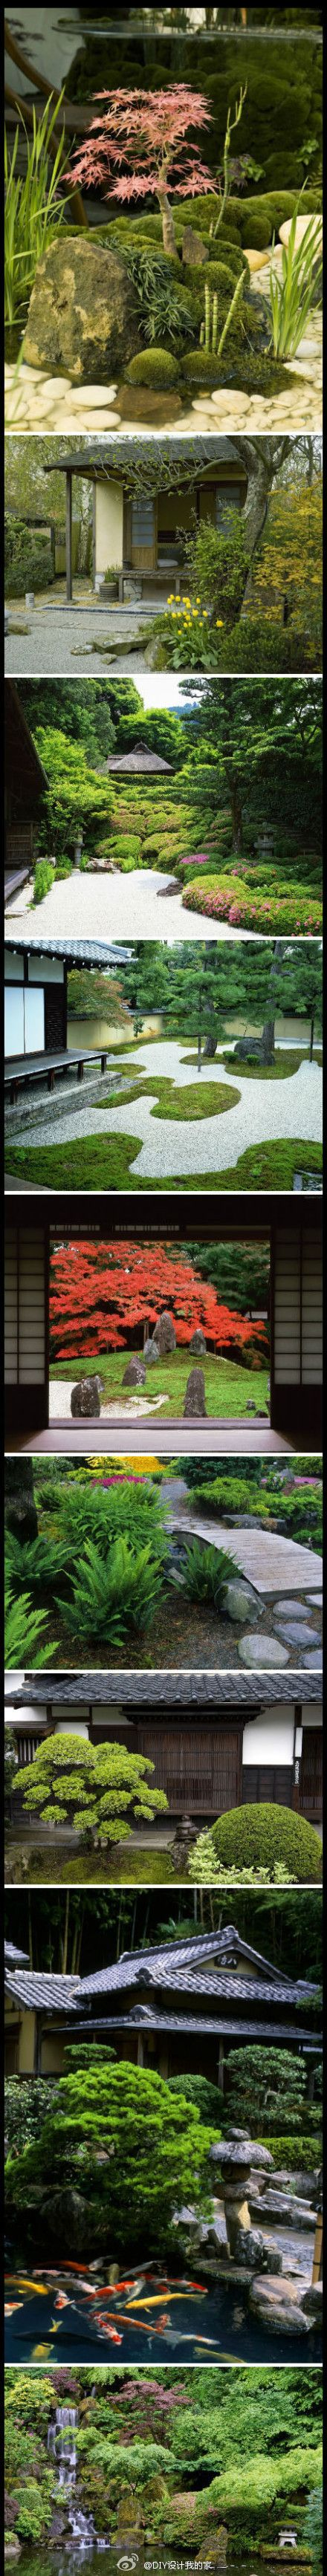 The japanese garden... complexity & simplicity at the same time